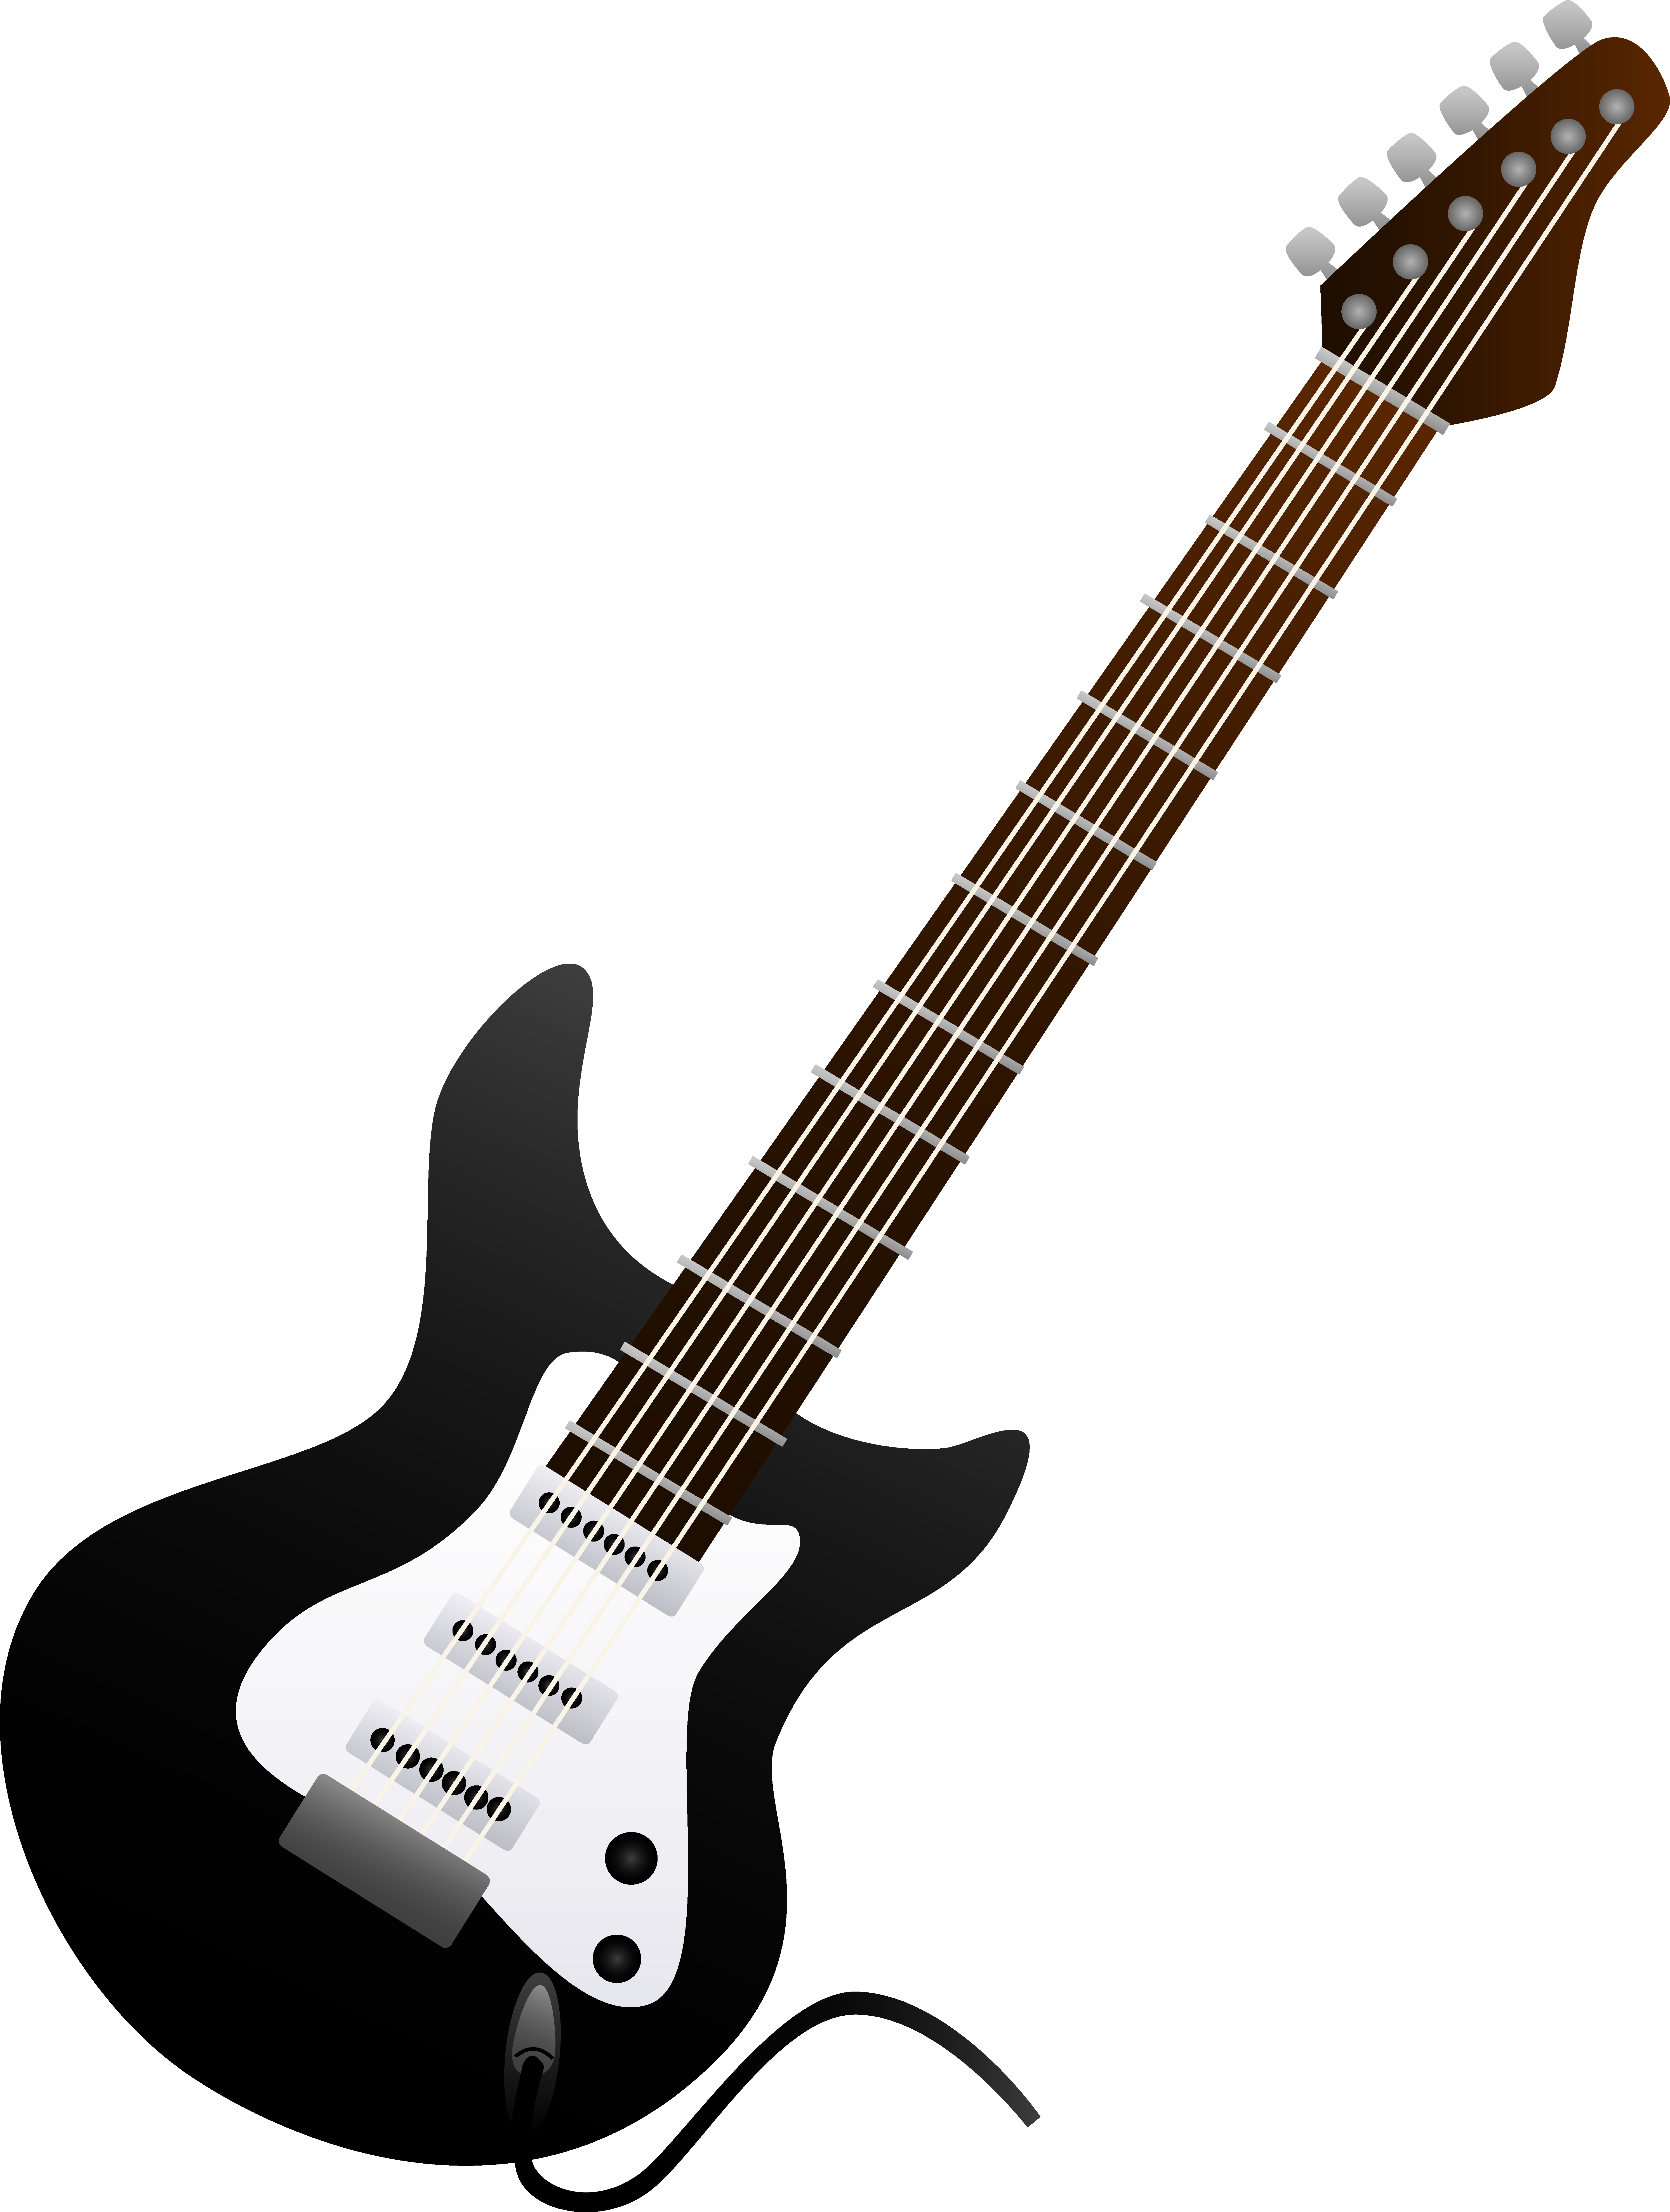 Free Clipart Of Guitar